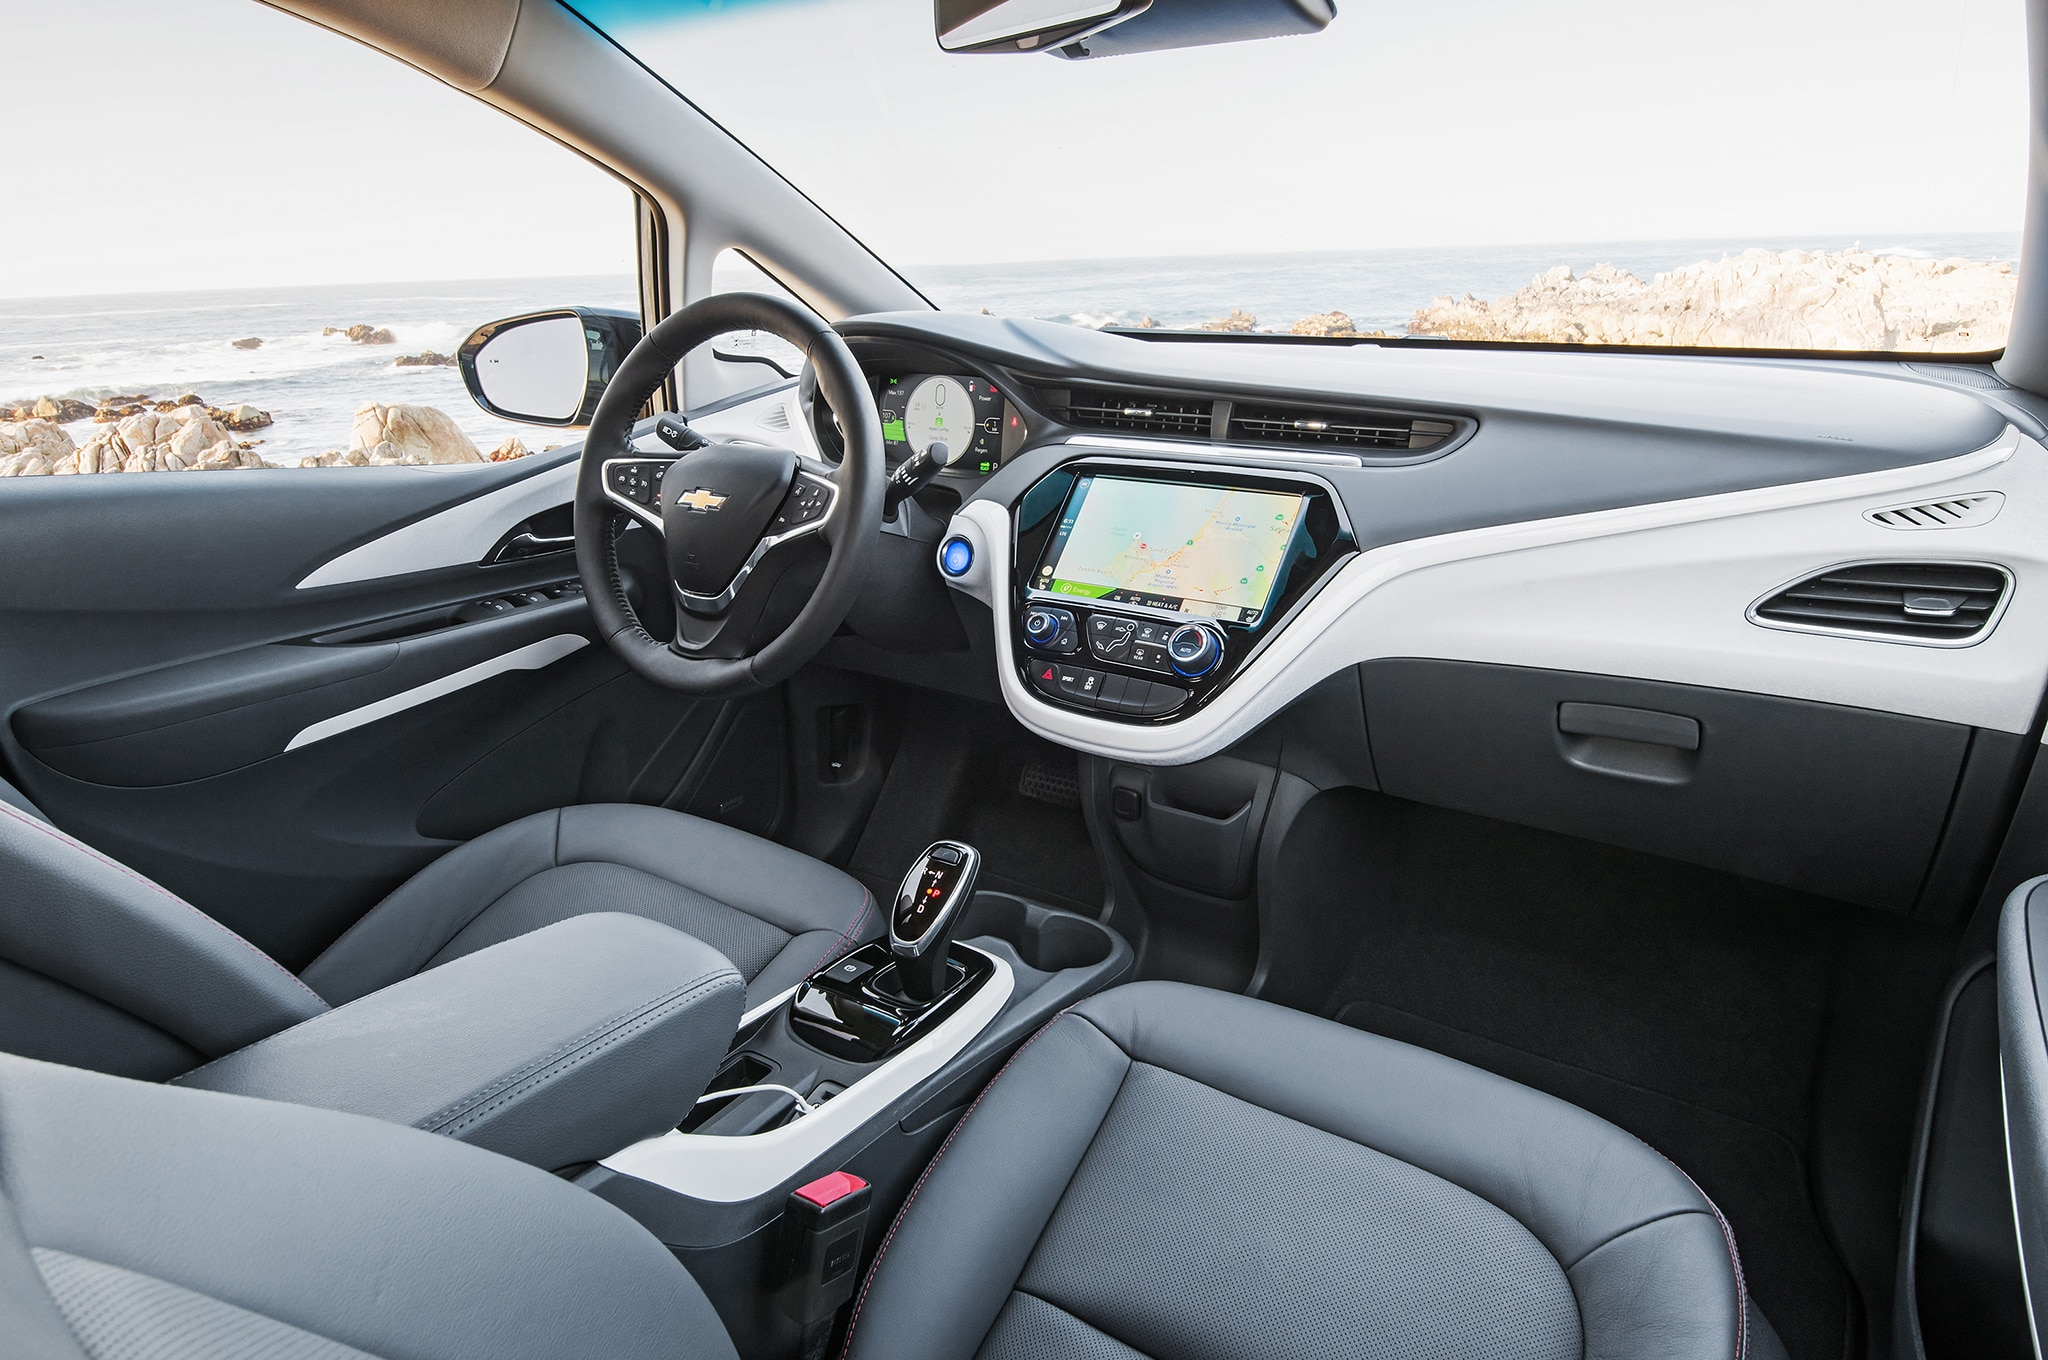 2017 Chevrolet Bolt EV Interior 2